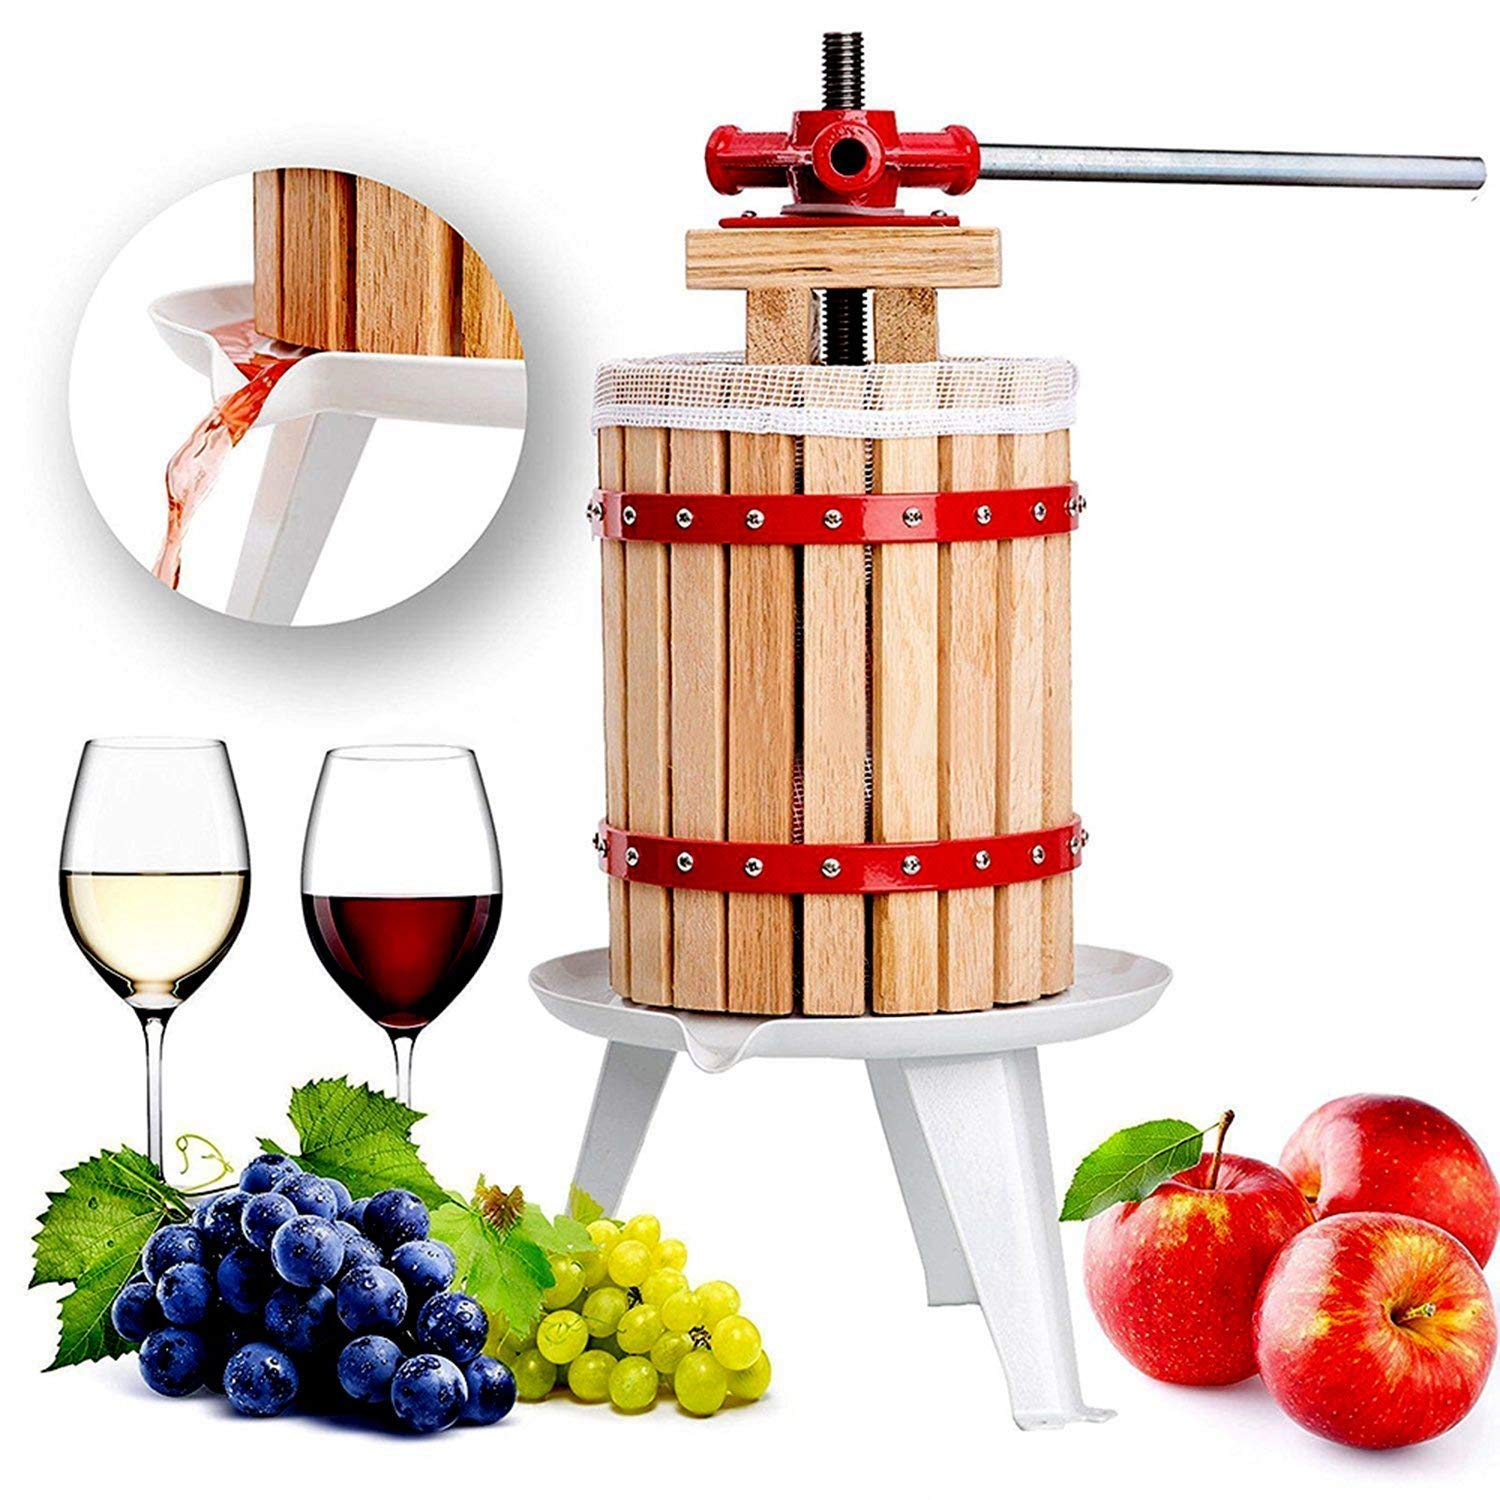 Fruit and Wine Press 4.75 Gallon Cider Apple Grape Crusher Juice Maker Tool Wood